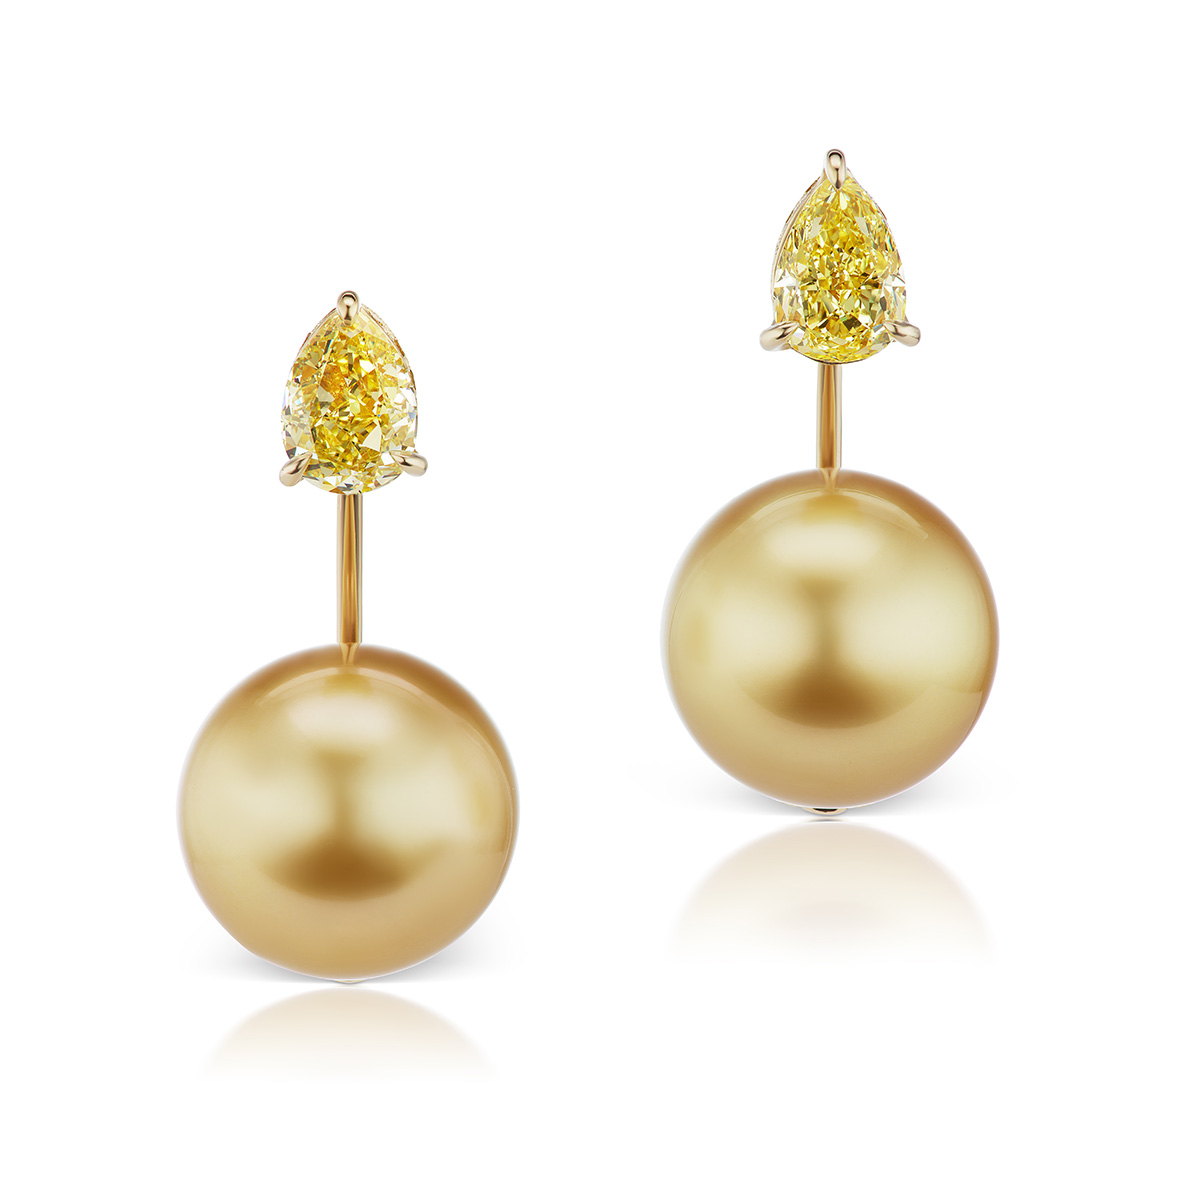 Floating Orb Earrings by Alexia Connellans